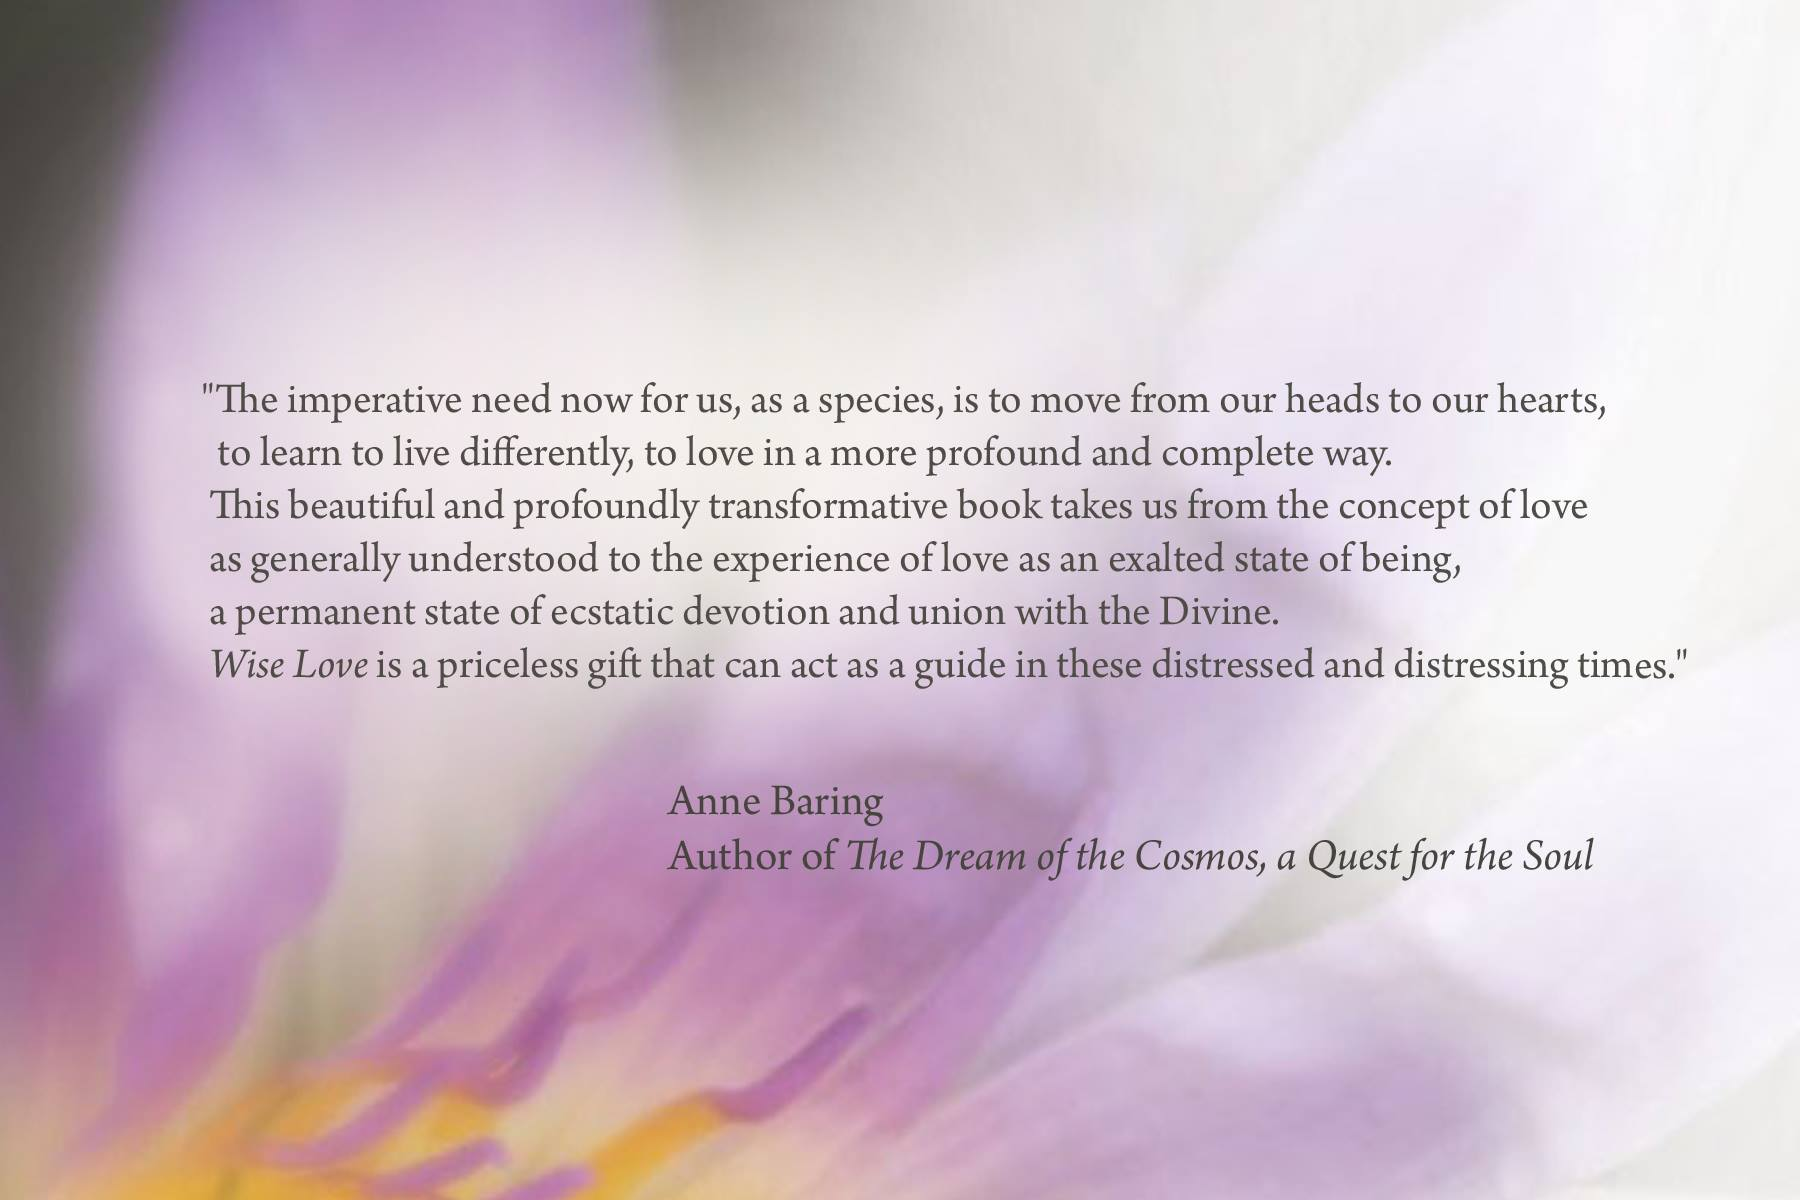 wise_love_endorsement_anne_baring